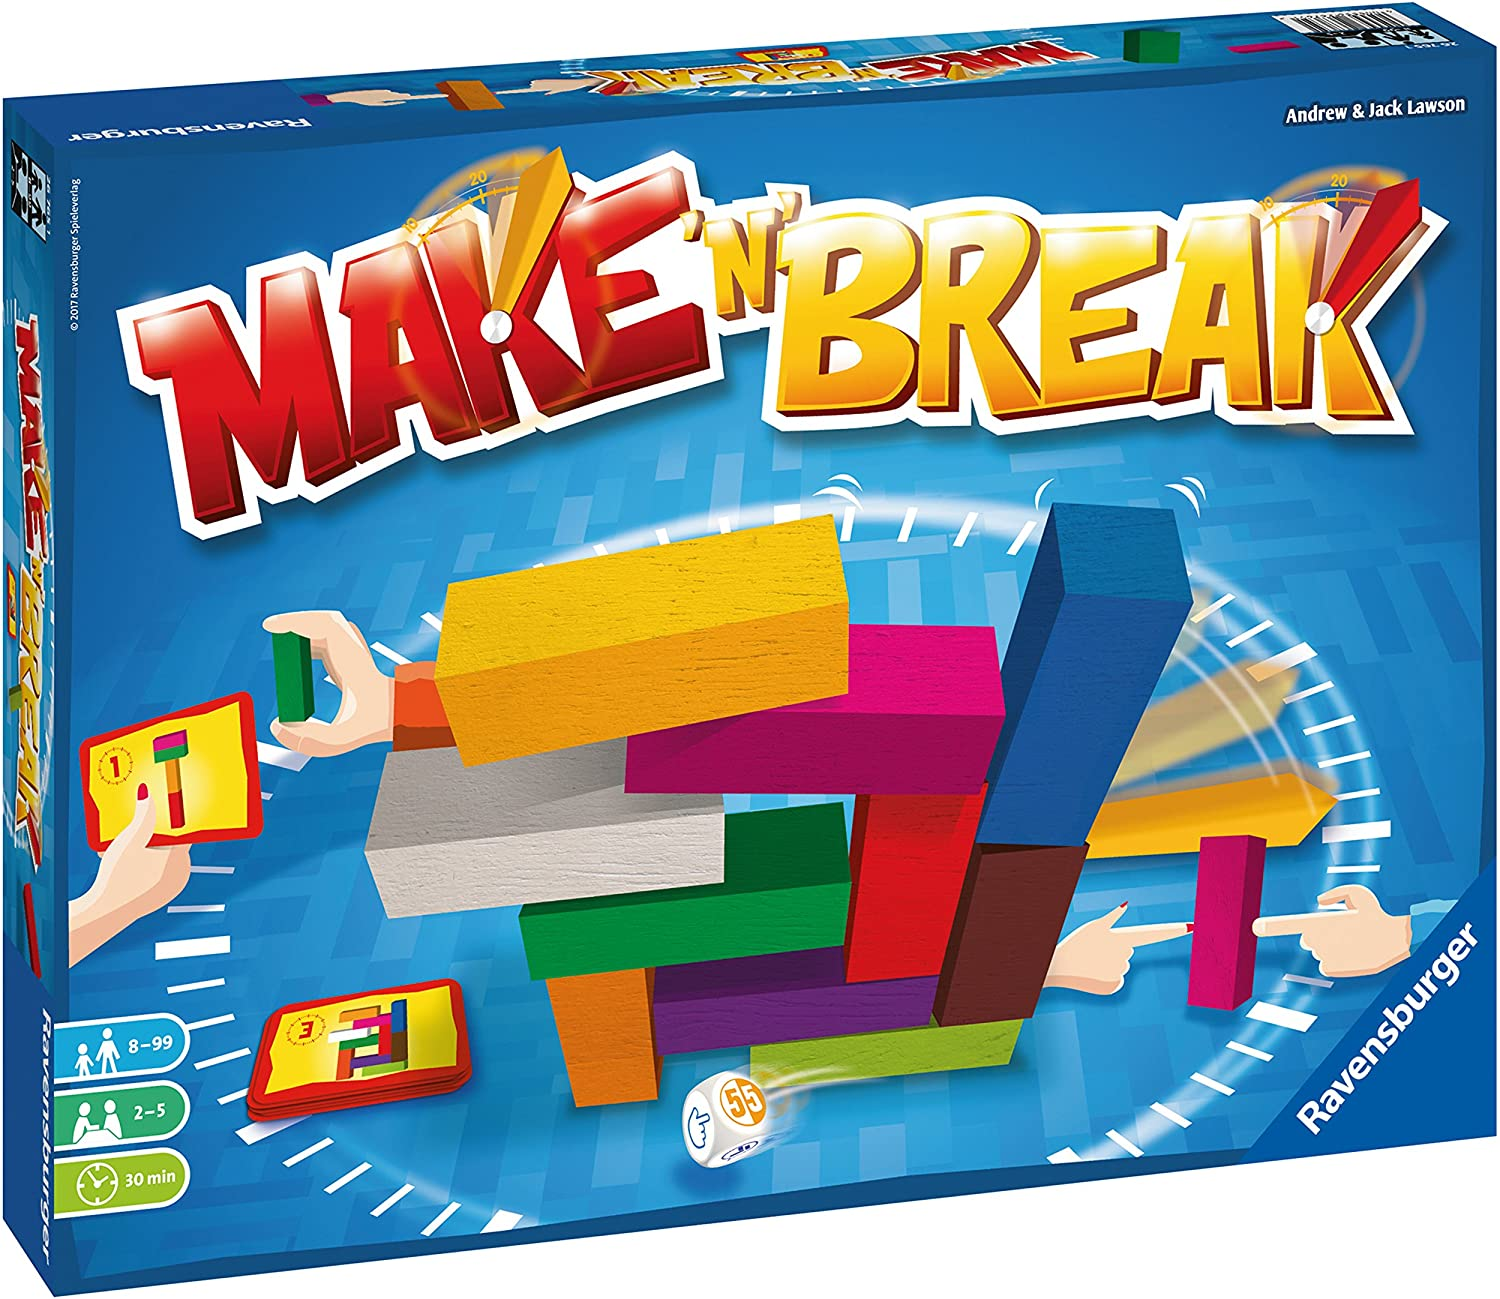 Make 'N' Break - JKA Toys